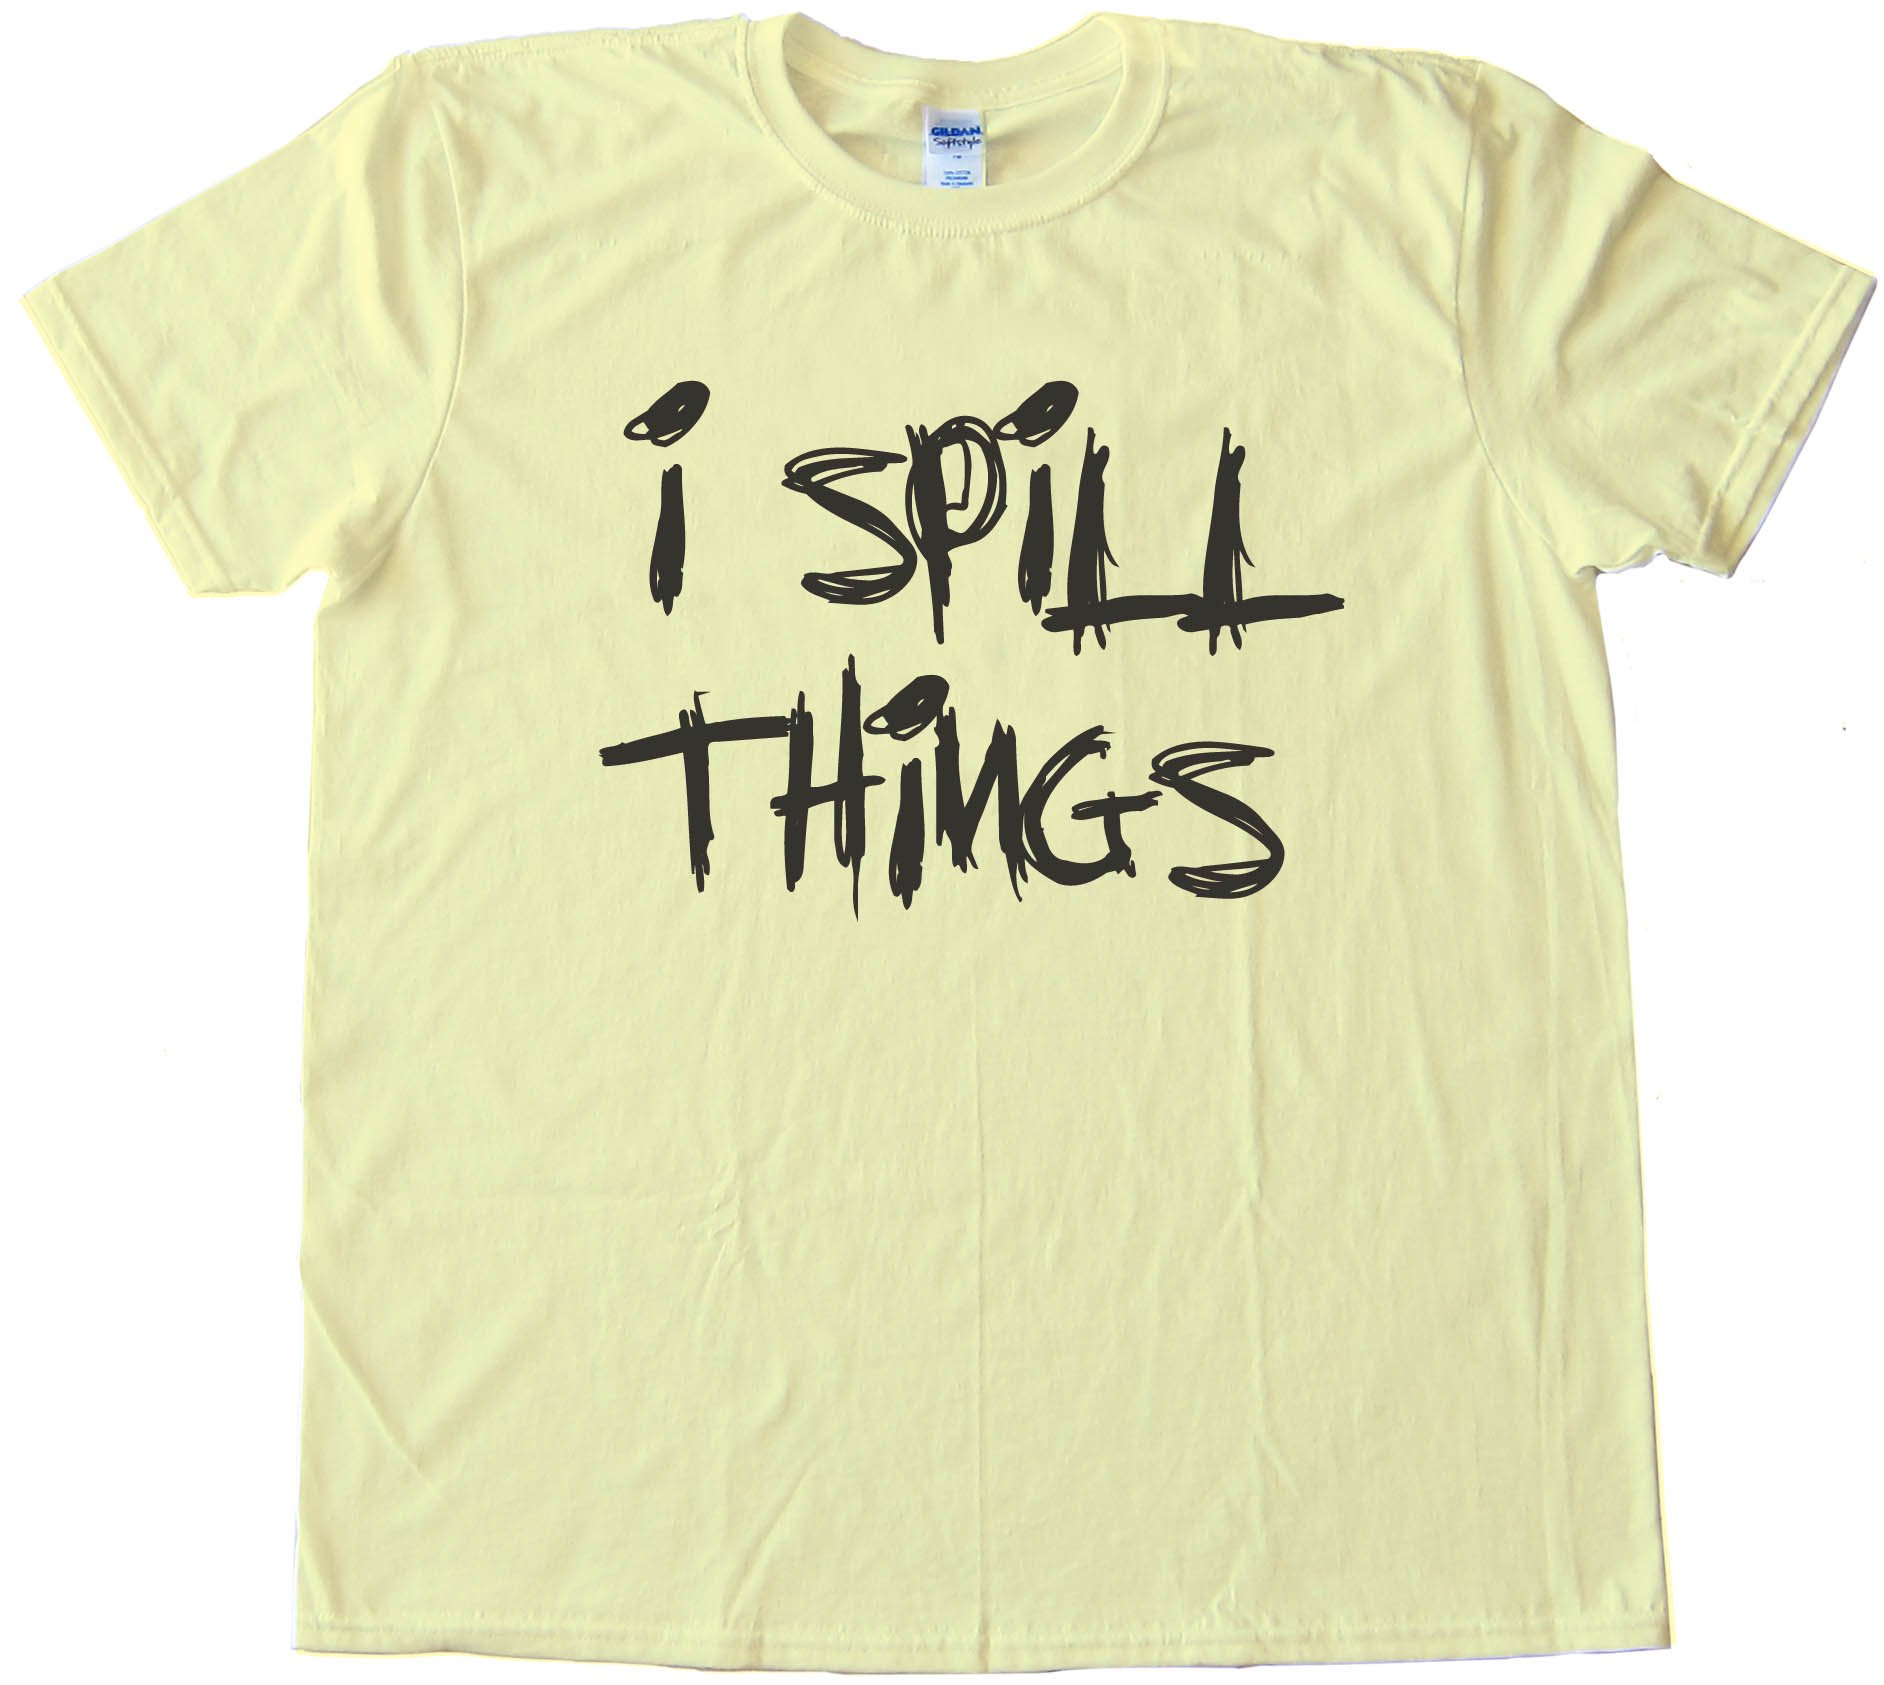 I Spill Things -Tee Shirt